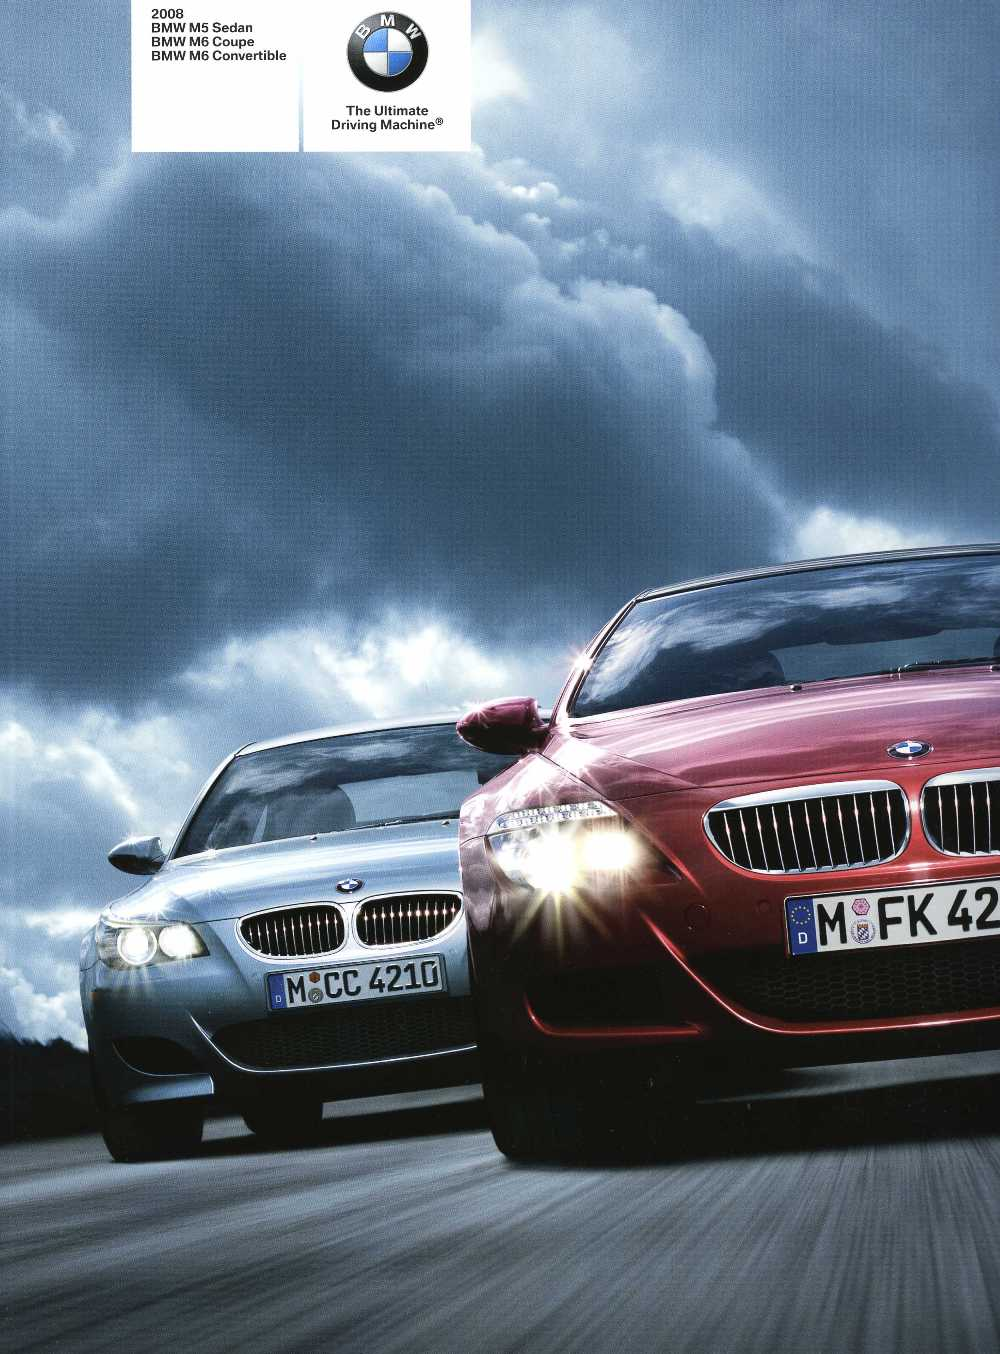 Brochure - 2008 BMW M5 Sedan BMW M6 Coupe BMW M6 Convertible - E60 M5 & E63 / E64 M6 (2nd version)